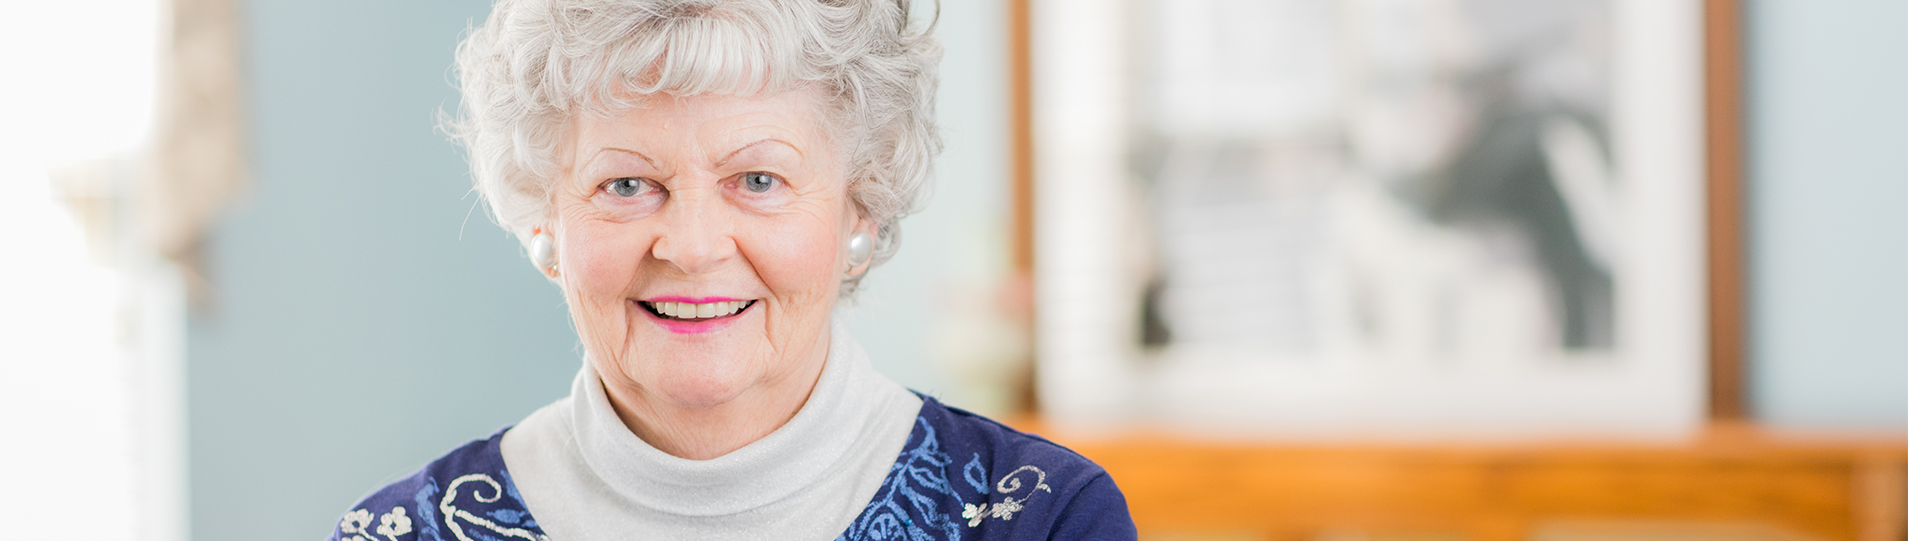 The Costs of Assisted Living at United Methodist Communities at The Shores in South Jersey